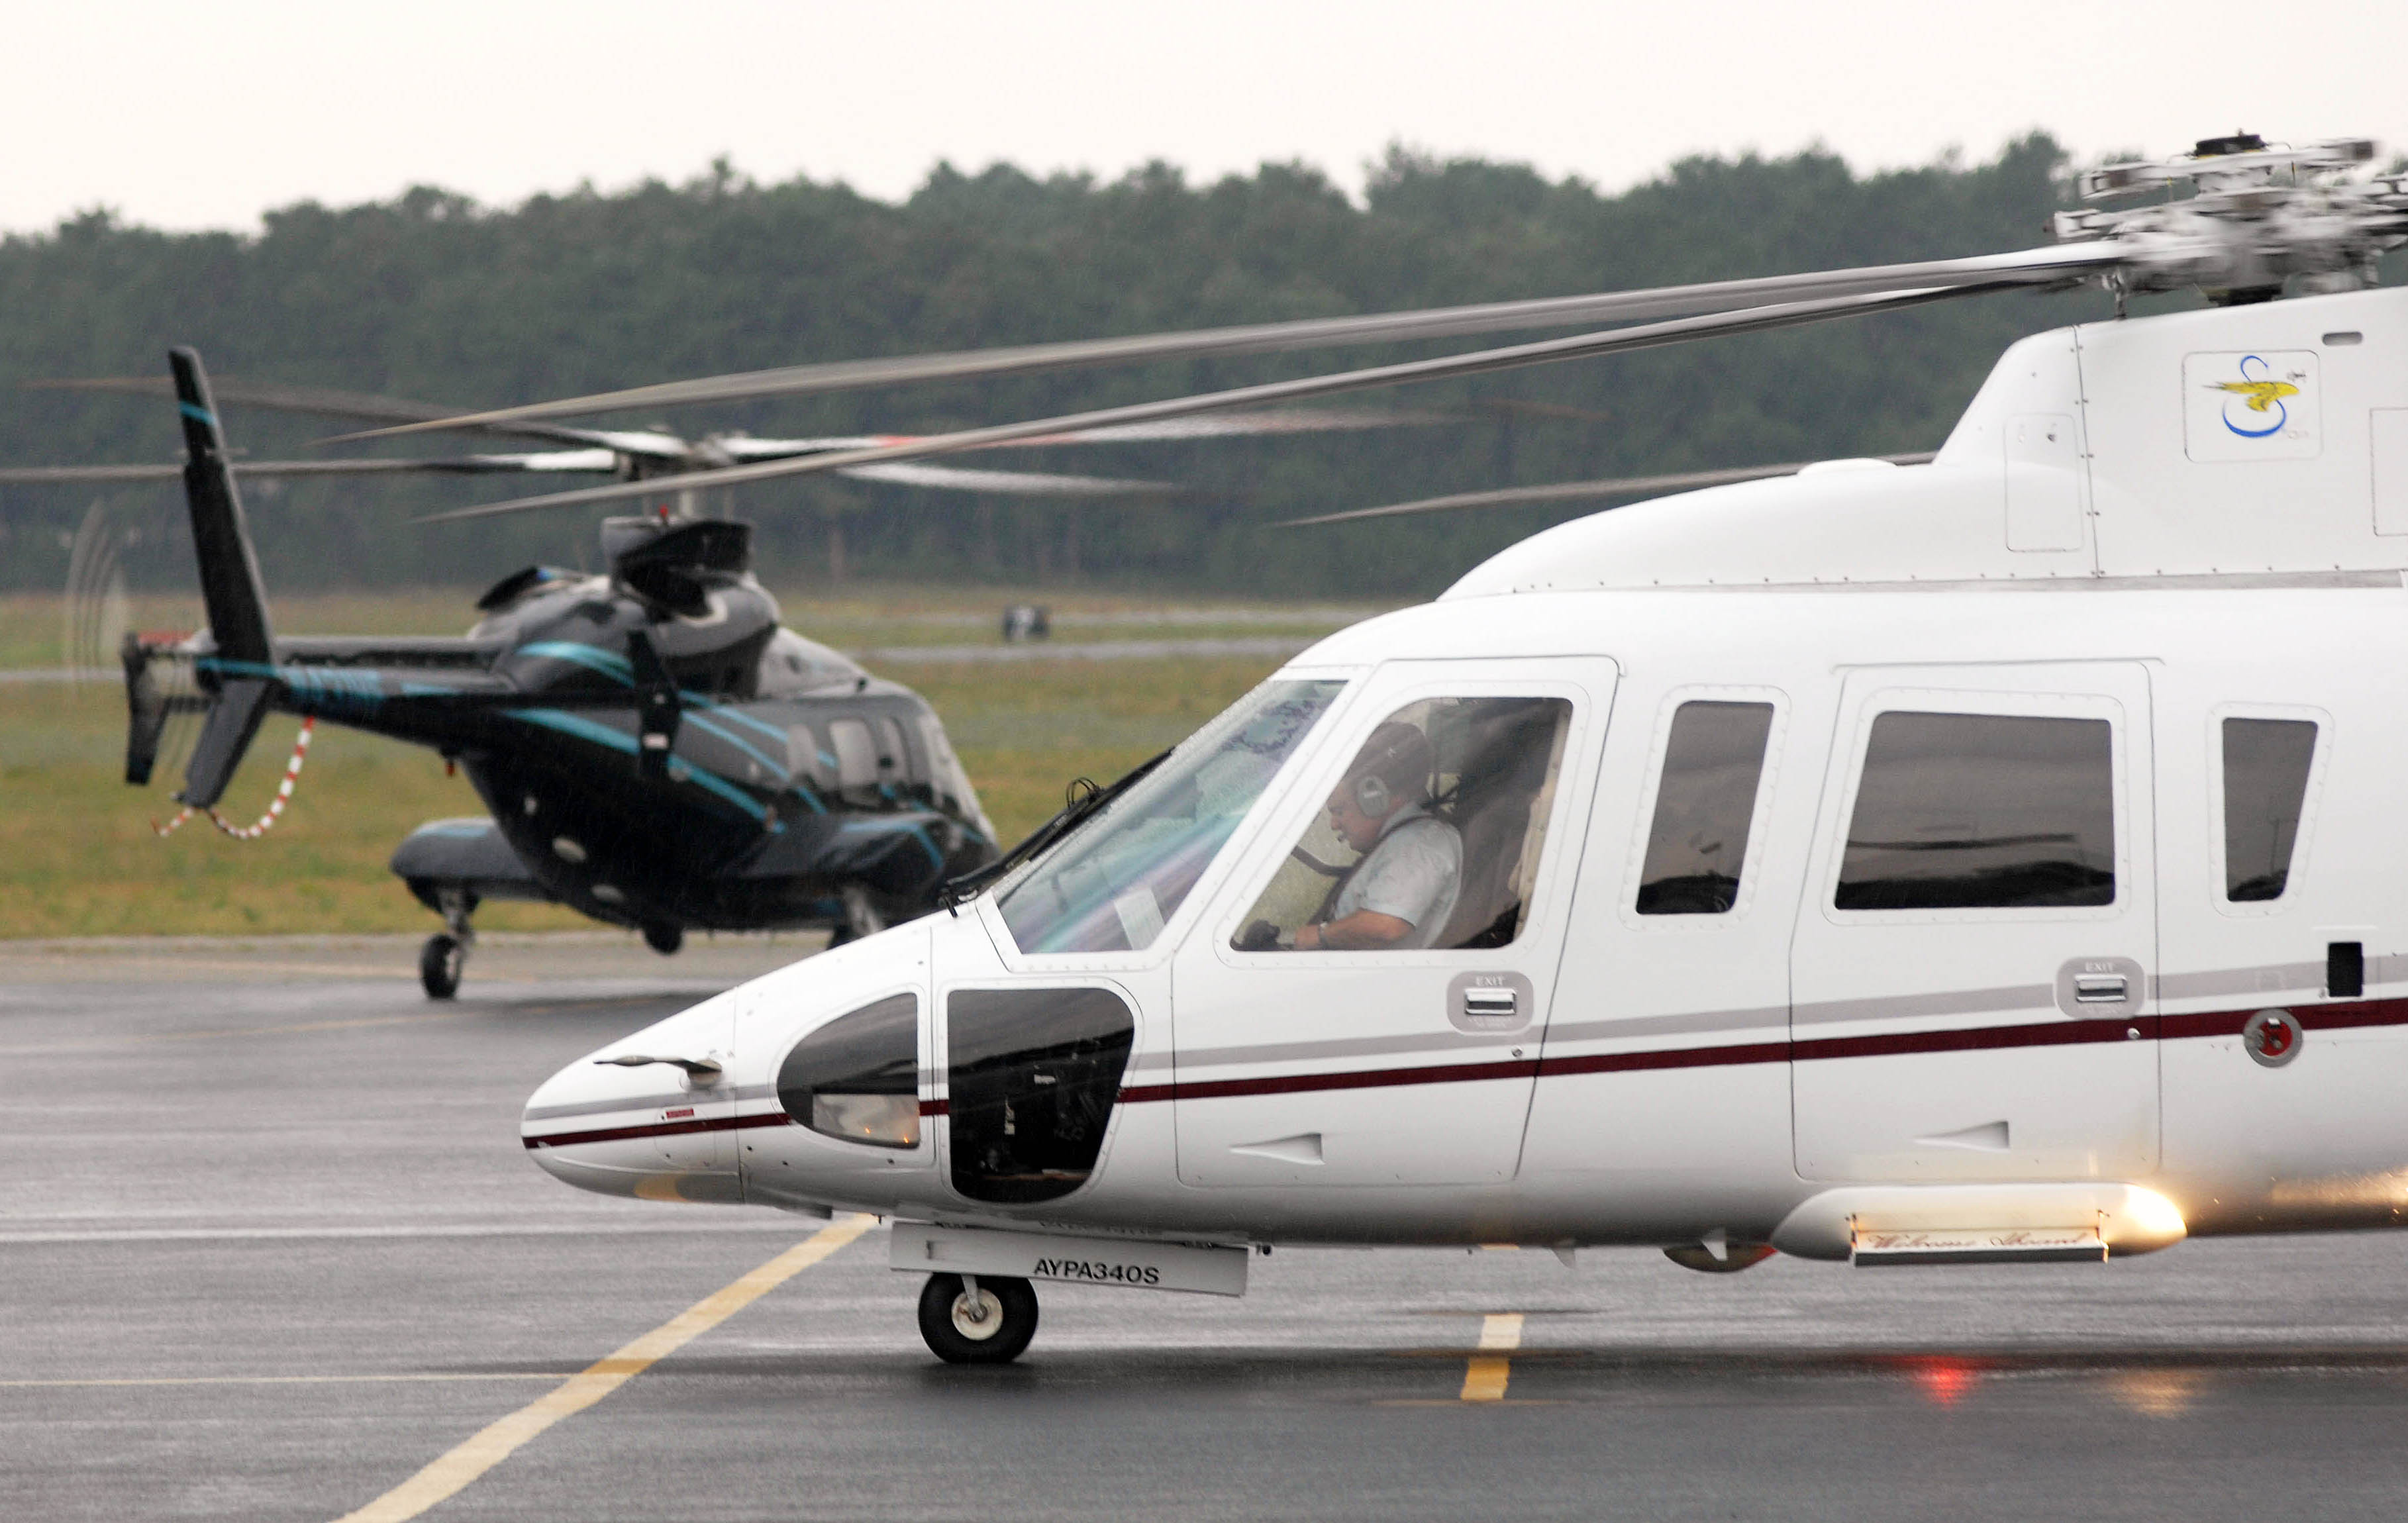 Helicopters prepare to depart the East Hampton Airport in East Hampton, New York, on Aug. 13, 2007.